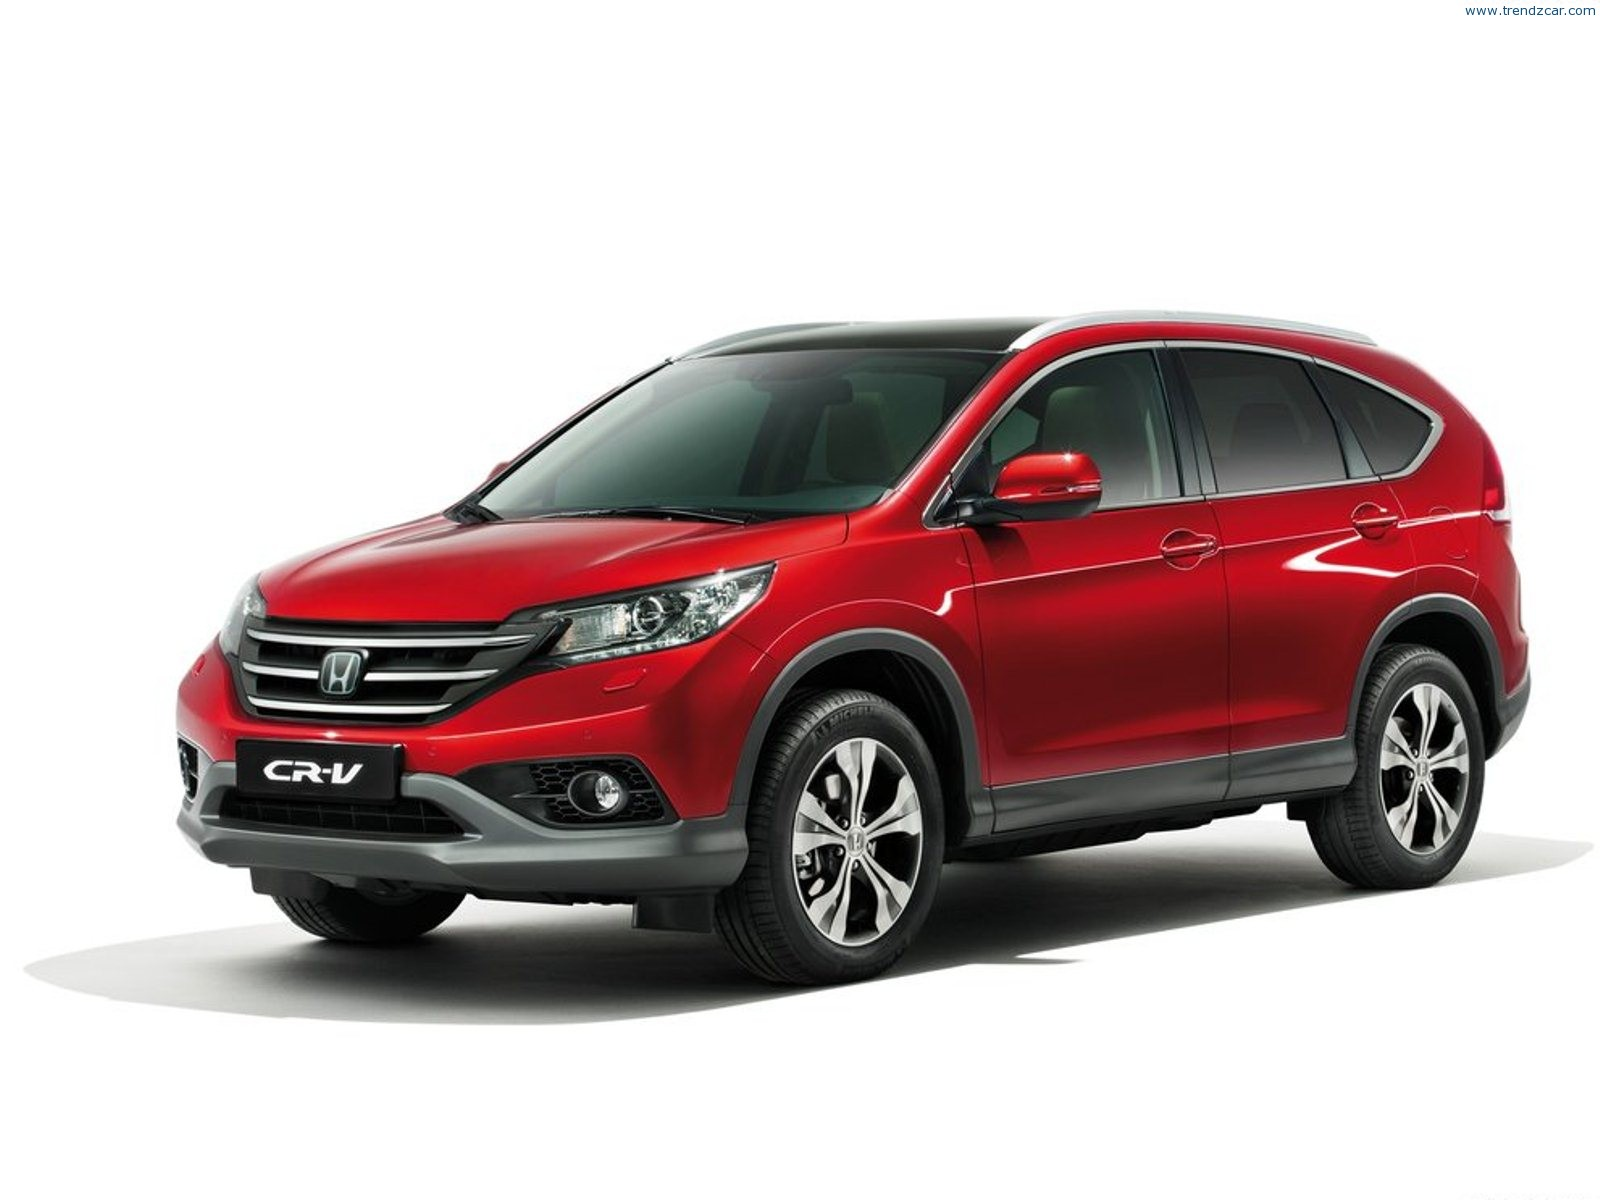 2013 honda cr v review. Black Bedroom Furniture Sets. Home Design Ideas